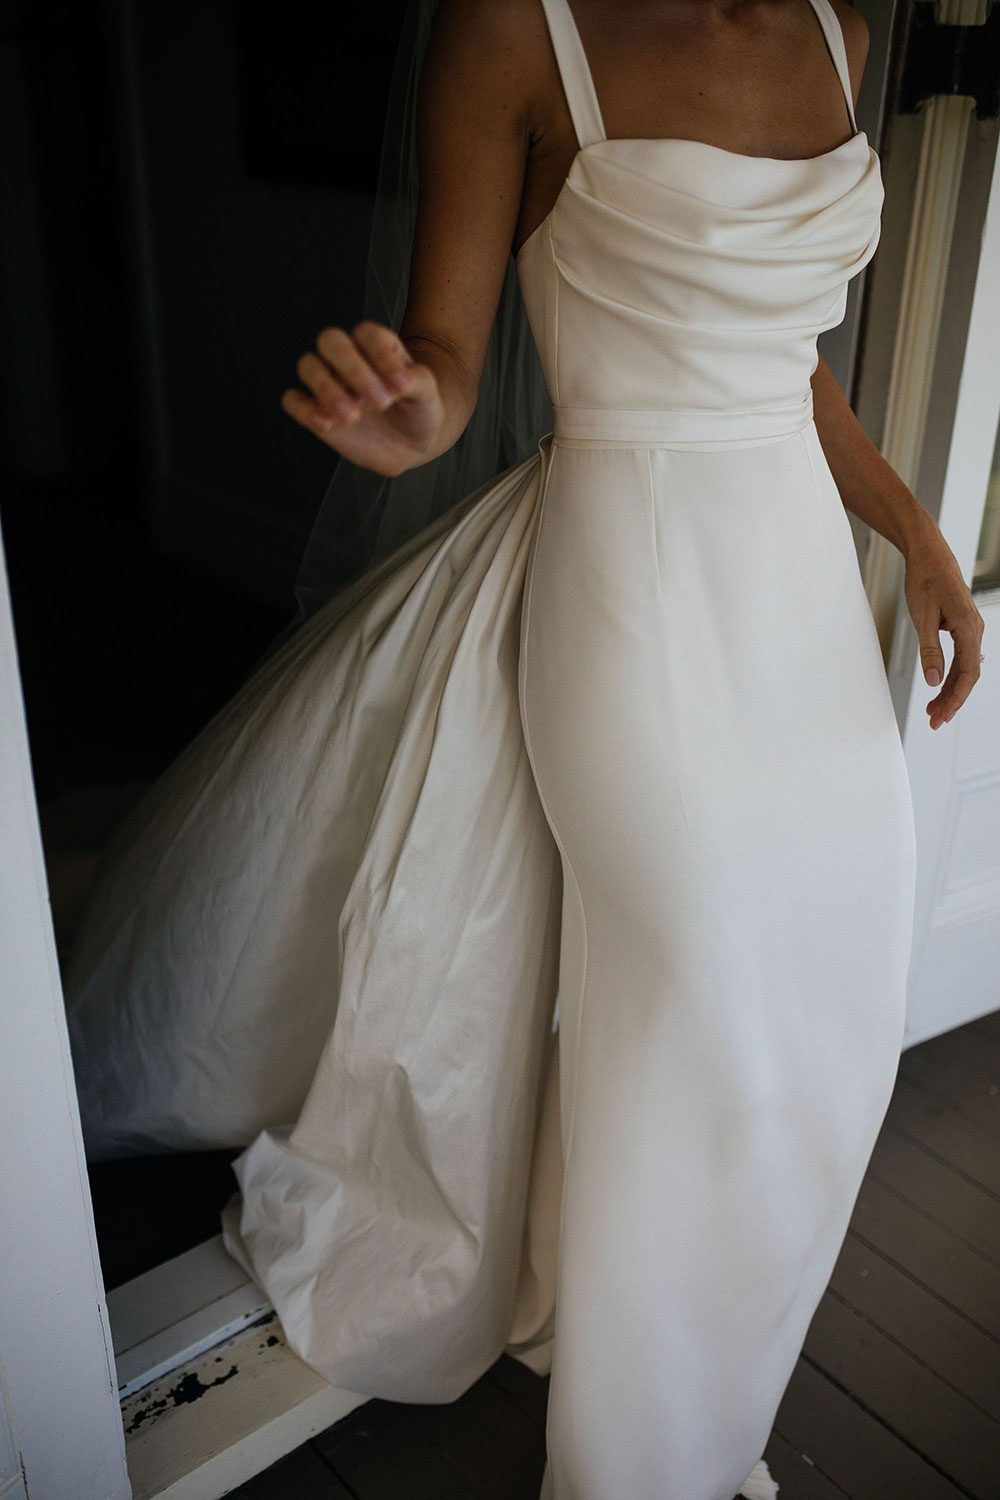 Bride wearing NZ Bespoke Bridal Gown made of silk faile with cowl bodice and detachable overskirt by Vinka Designs - front of dress